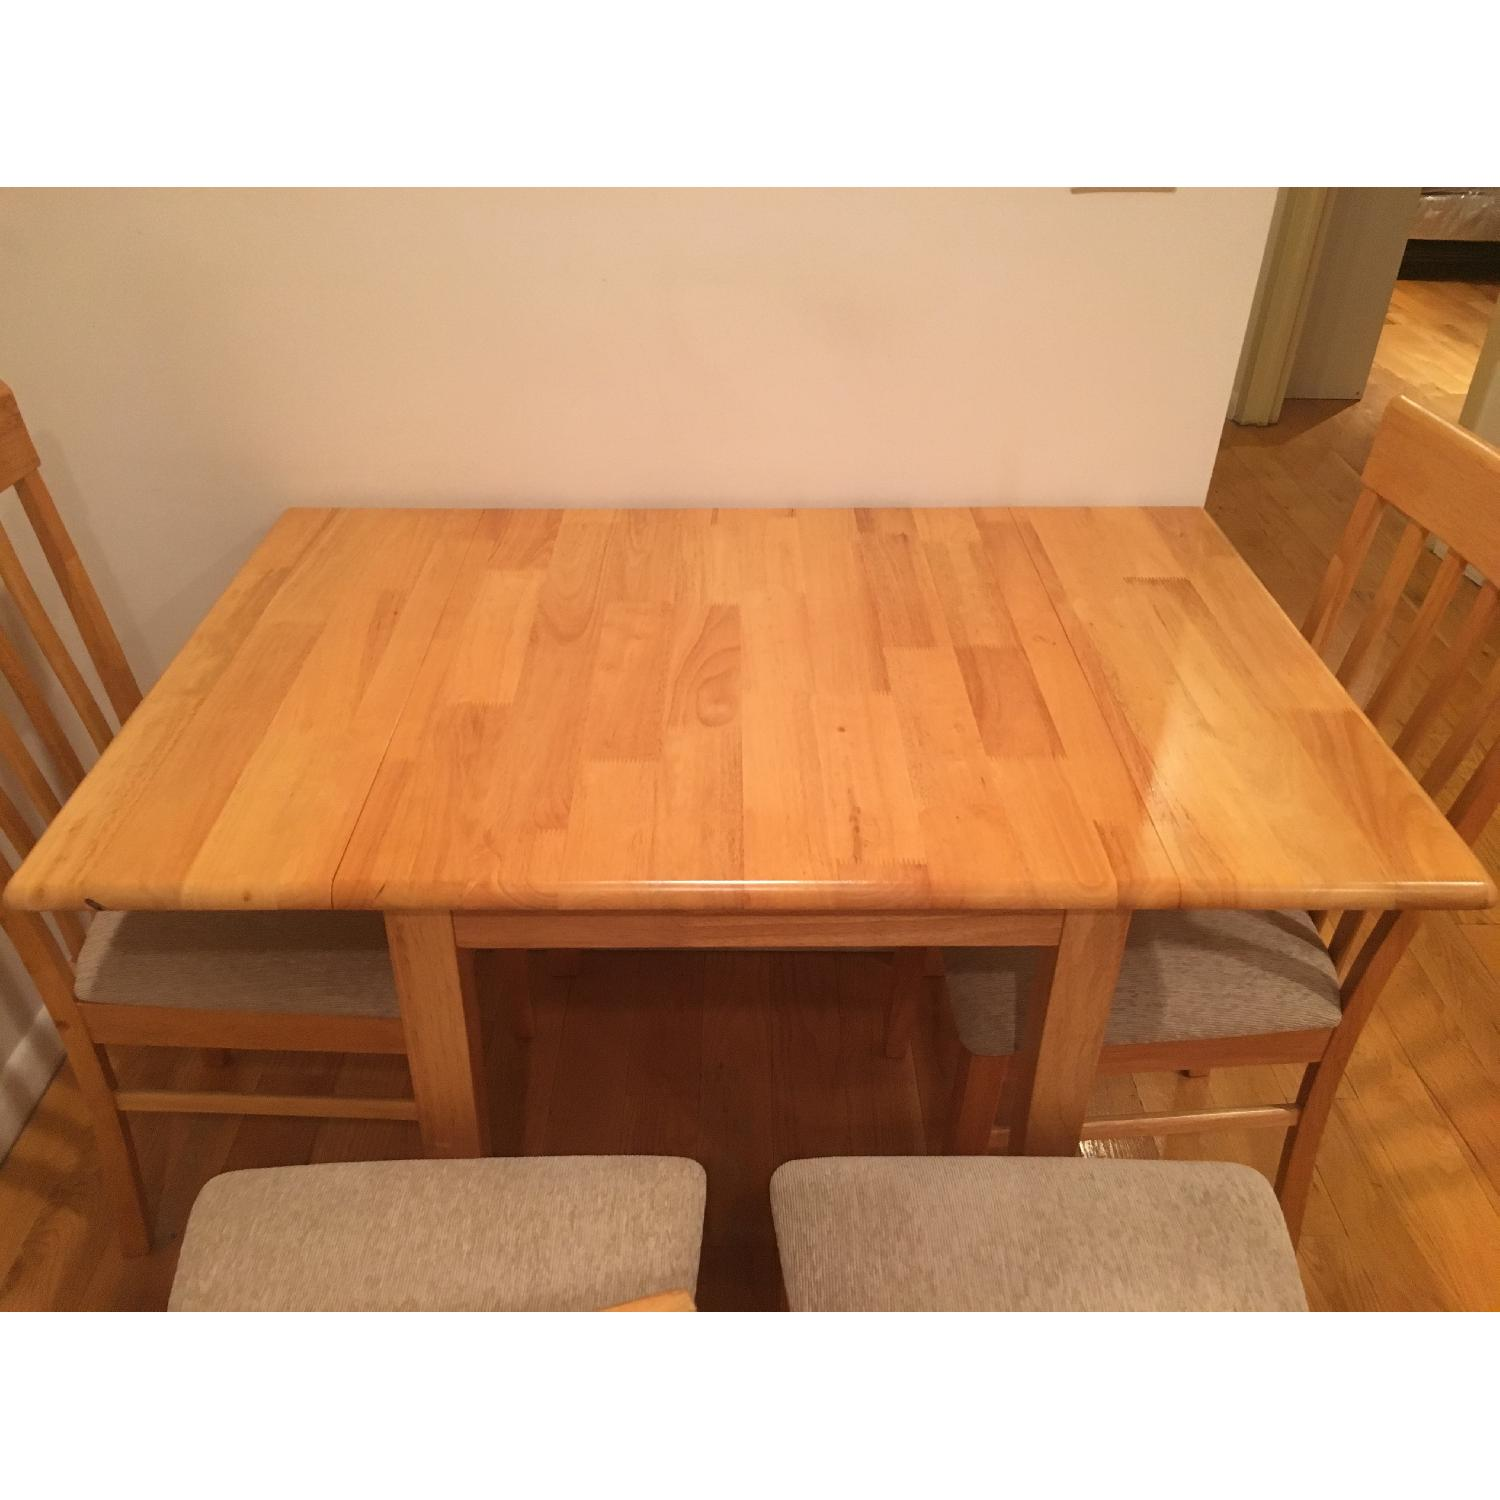 Natural Solid Wood Dining Table w/ 4 Chairs - image-3